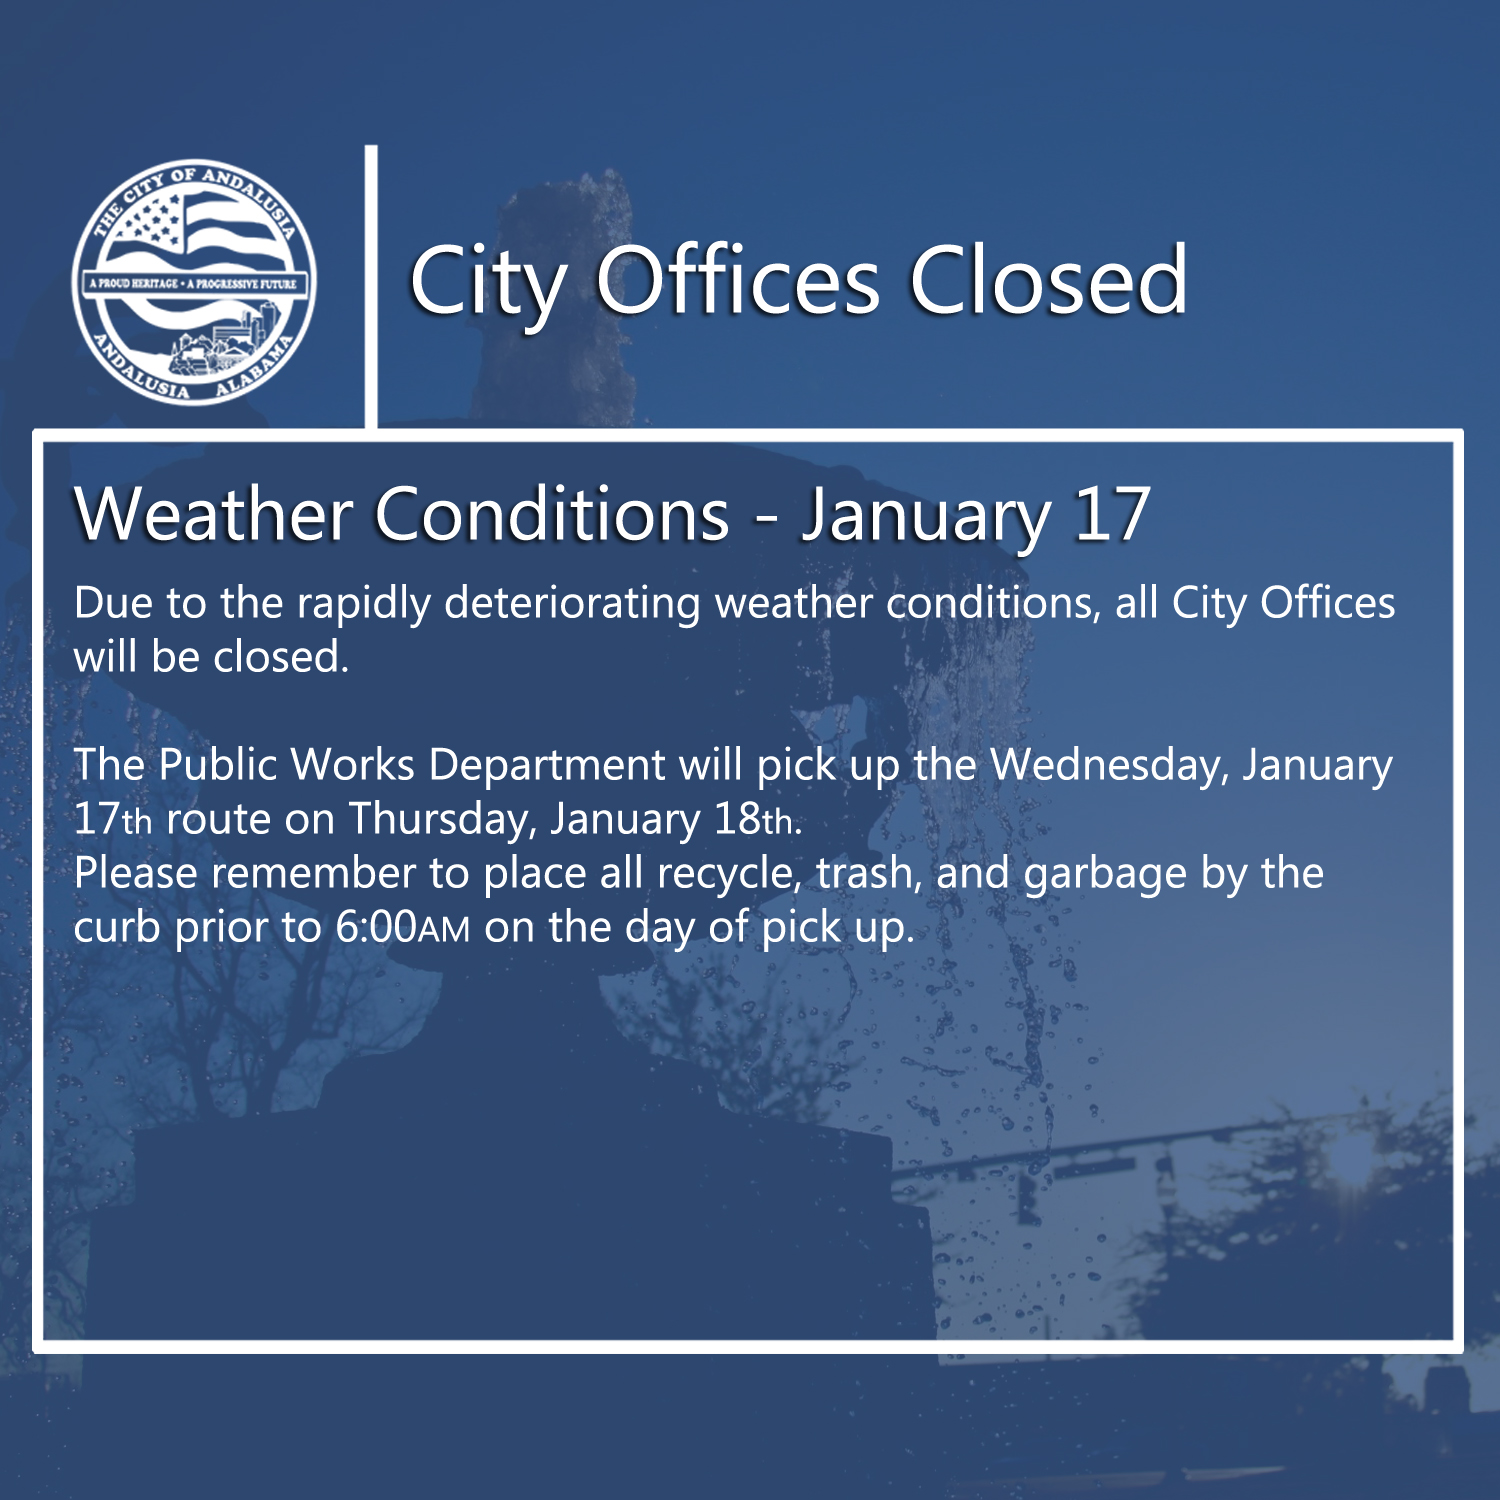 Facebook City Offices Closed Weather Jan 17